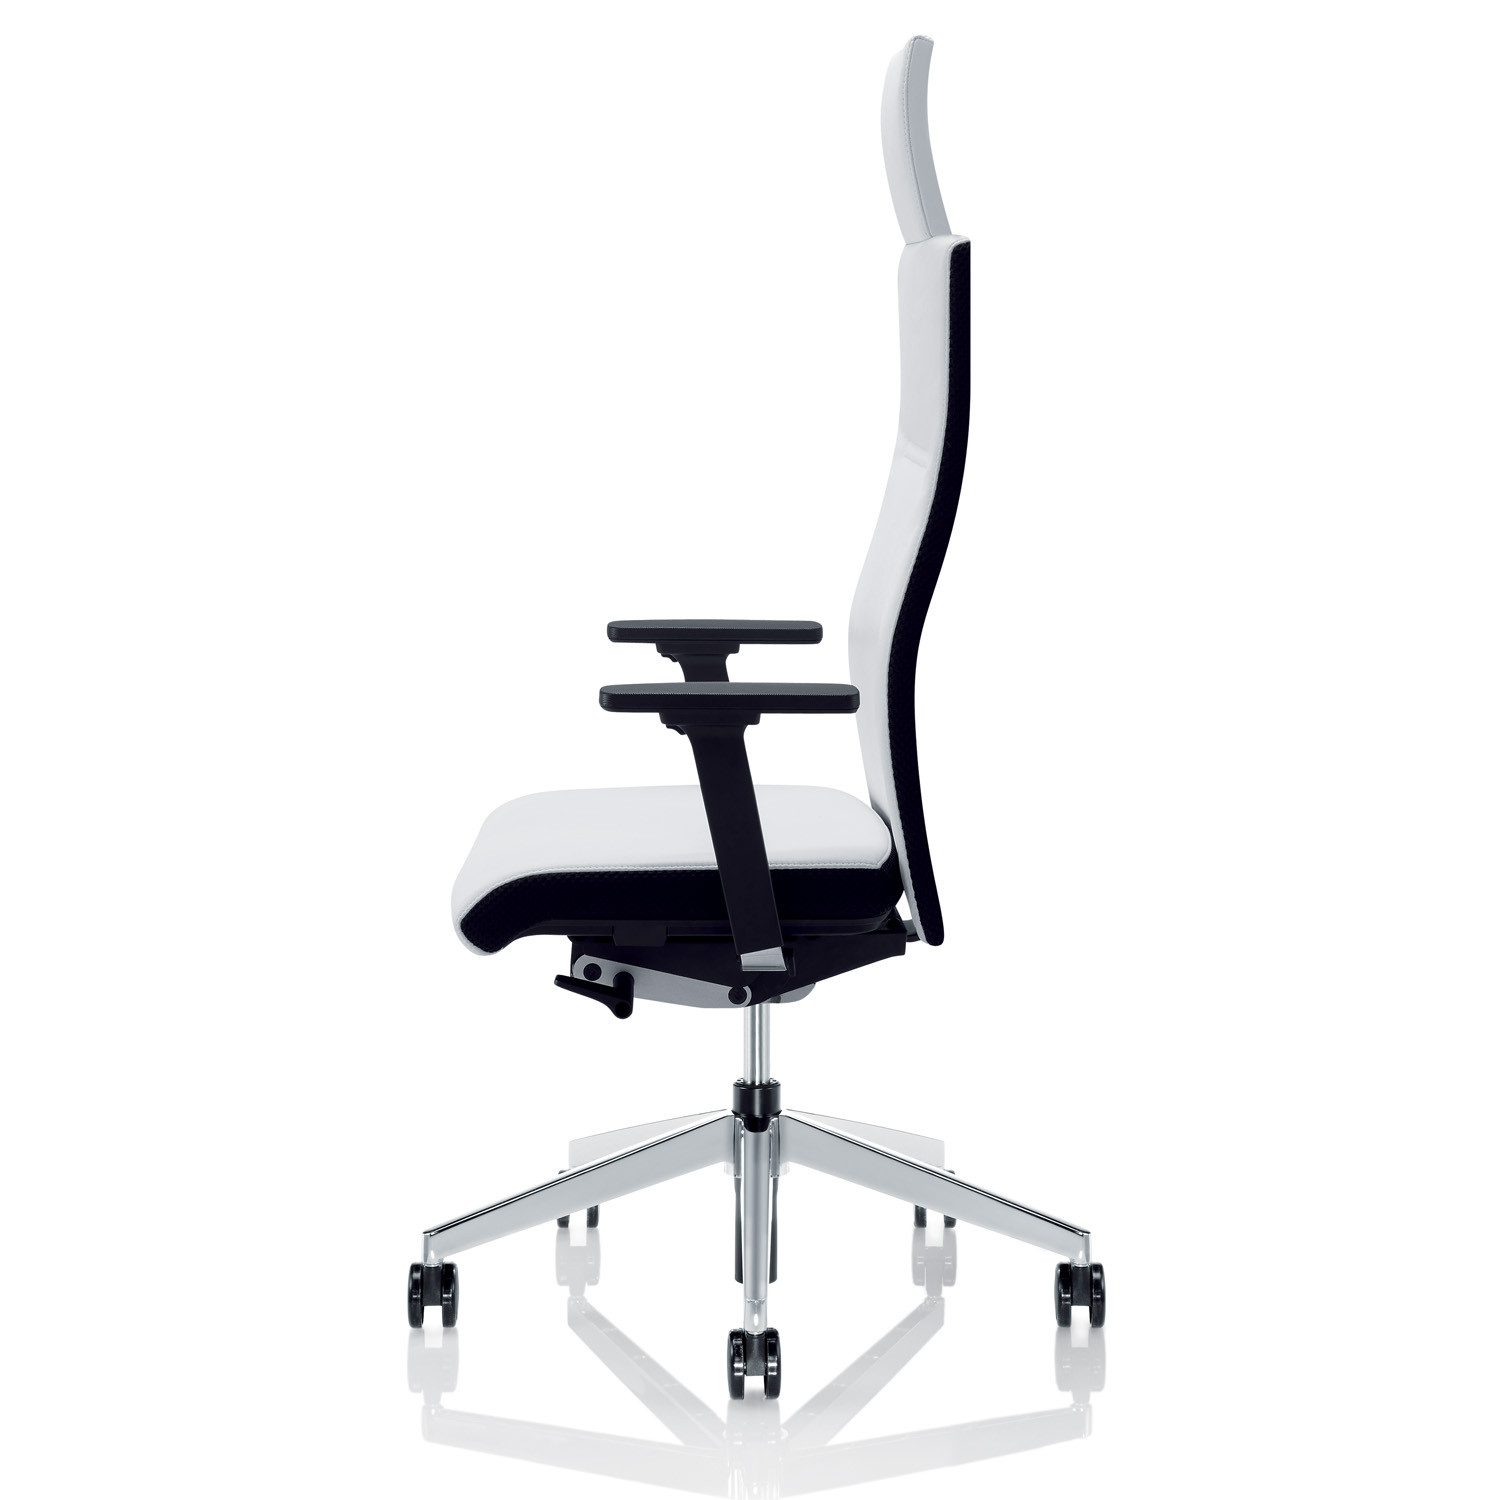 CuboFLEX Ergonomic Office Chair Profile